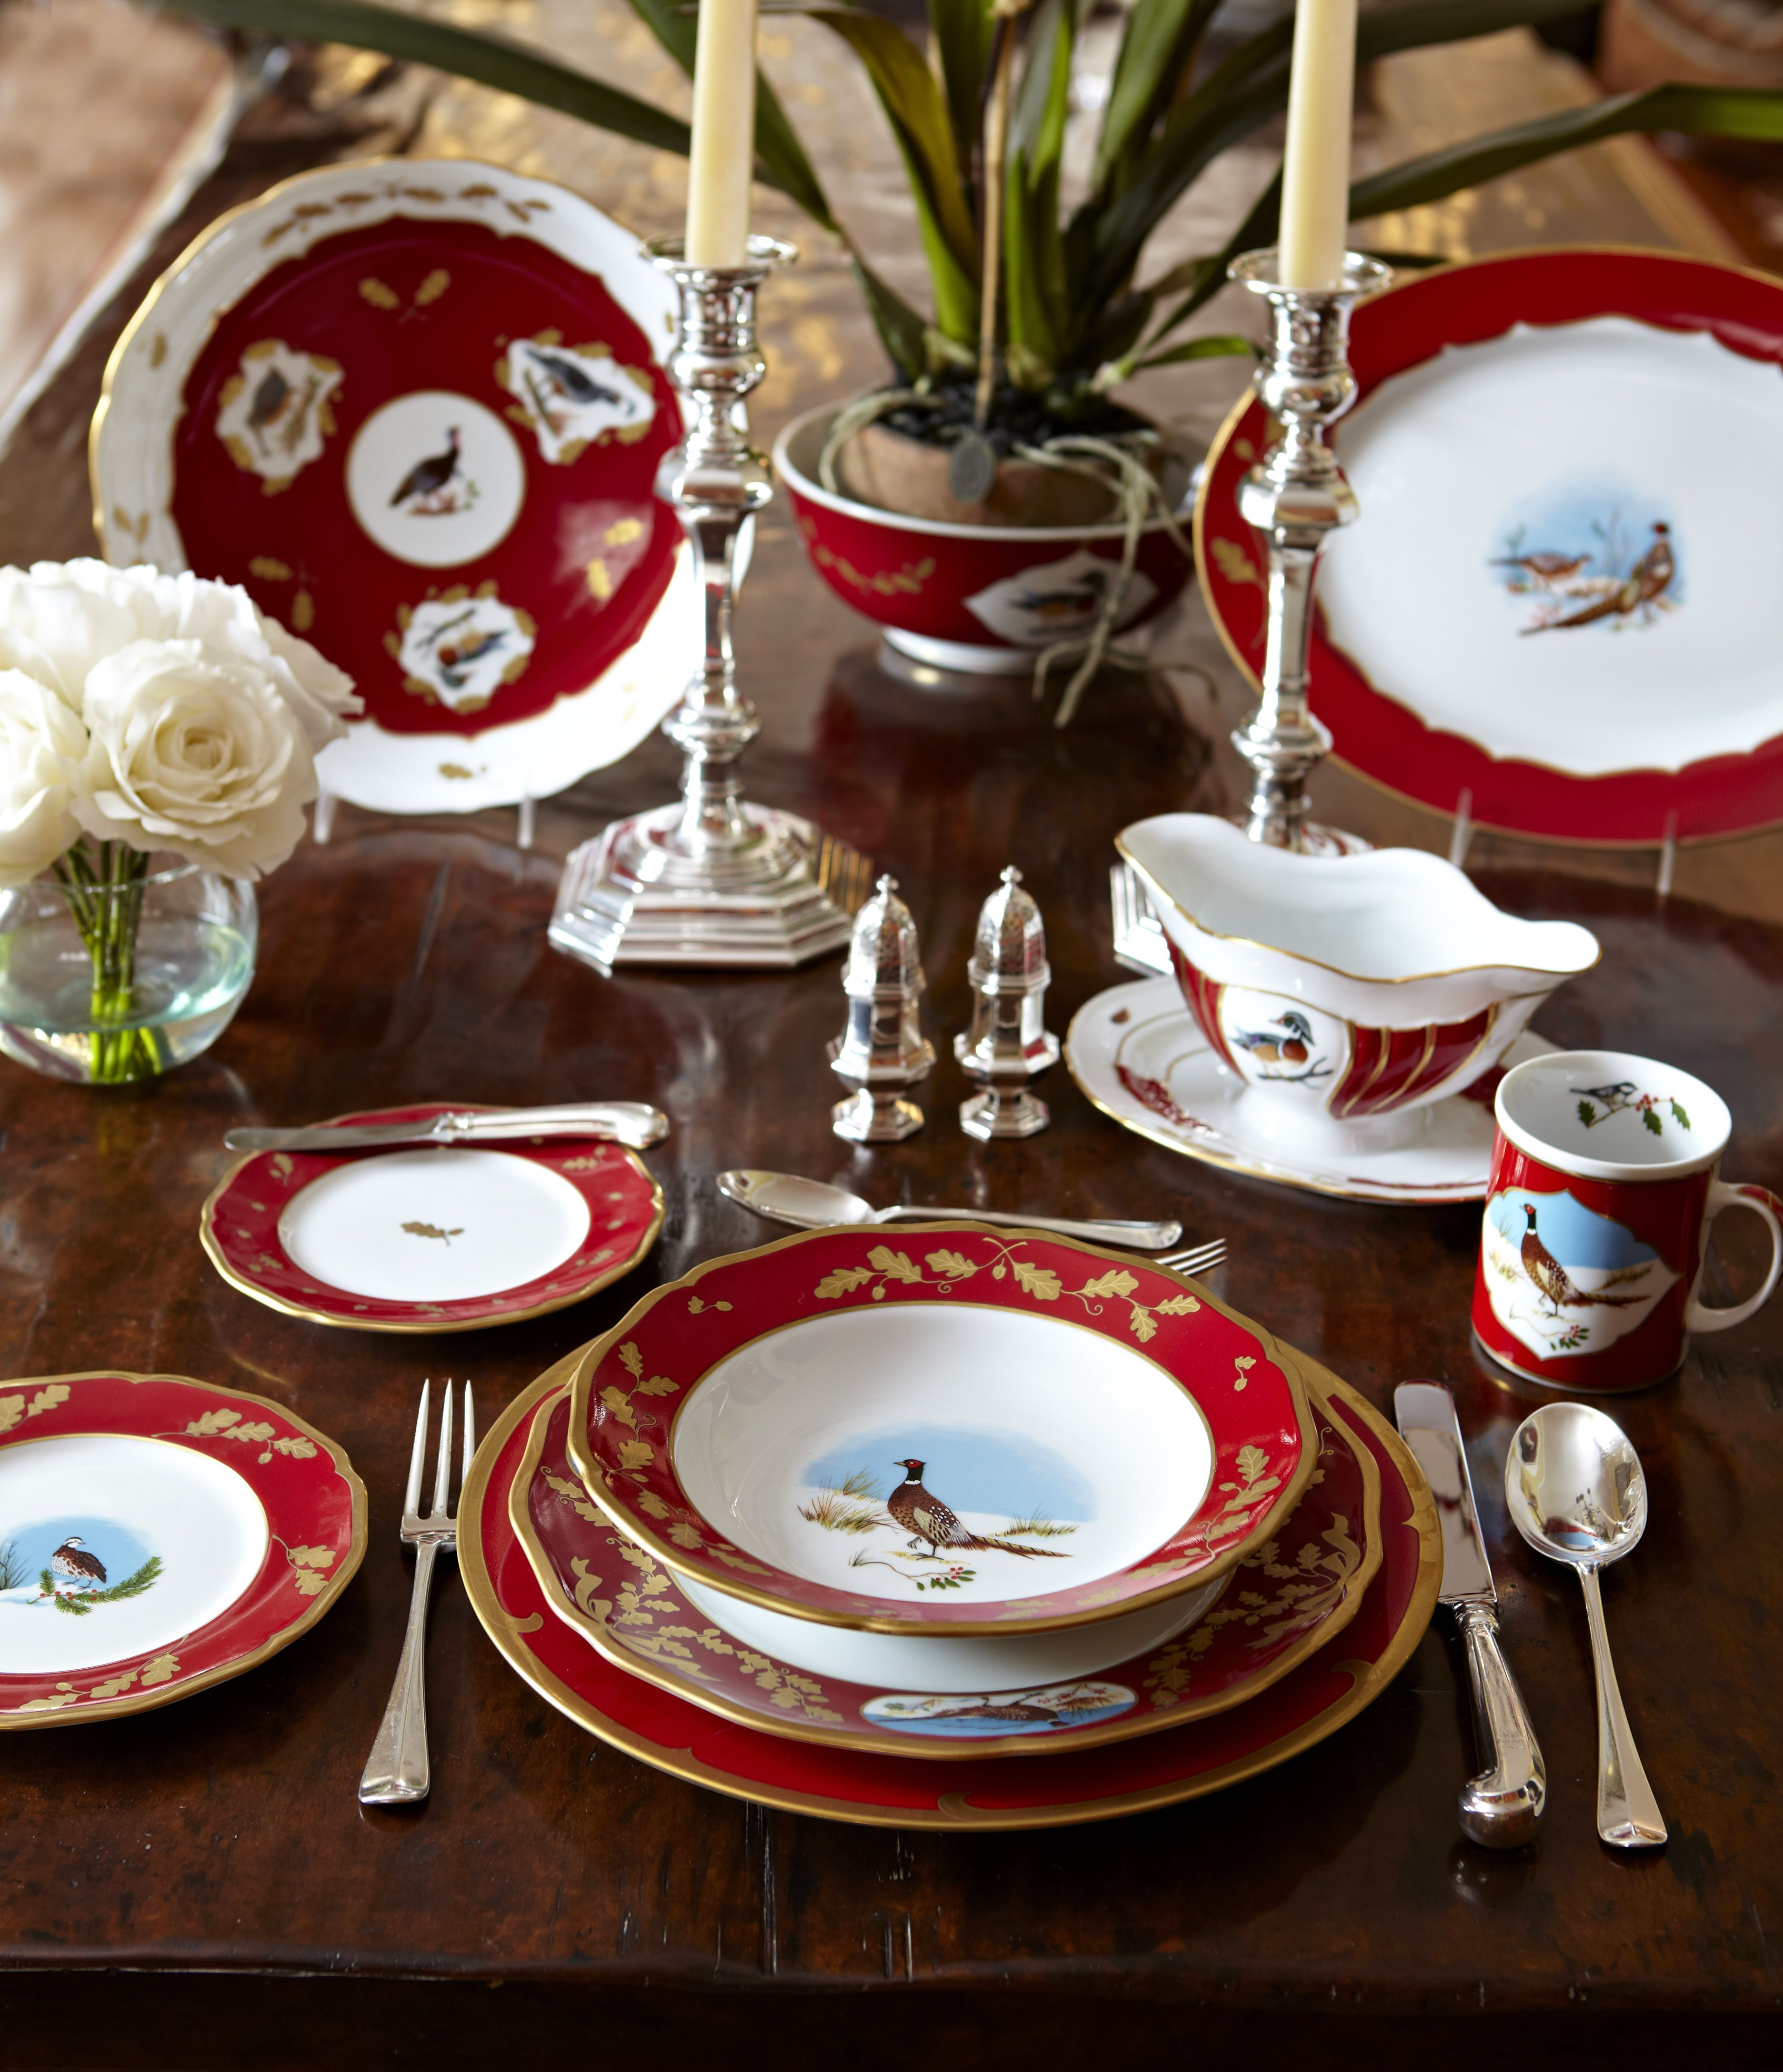 Winter Game Birds full collection by Lynn Chase & Winter Game Birds full collection by Lynn Chase   Winter Game Birds ...